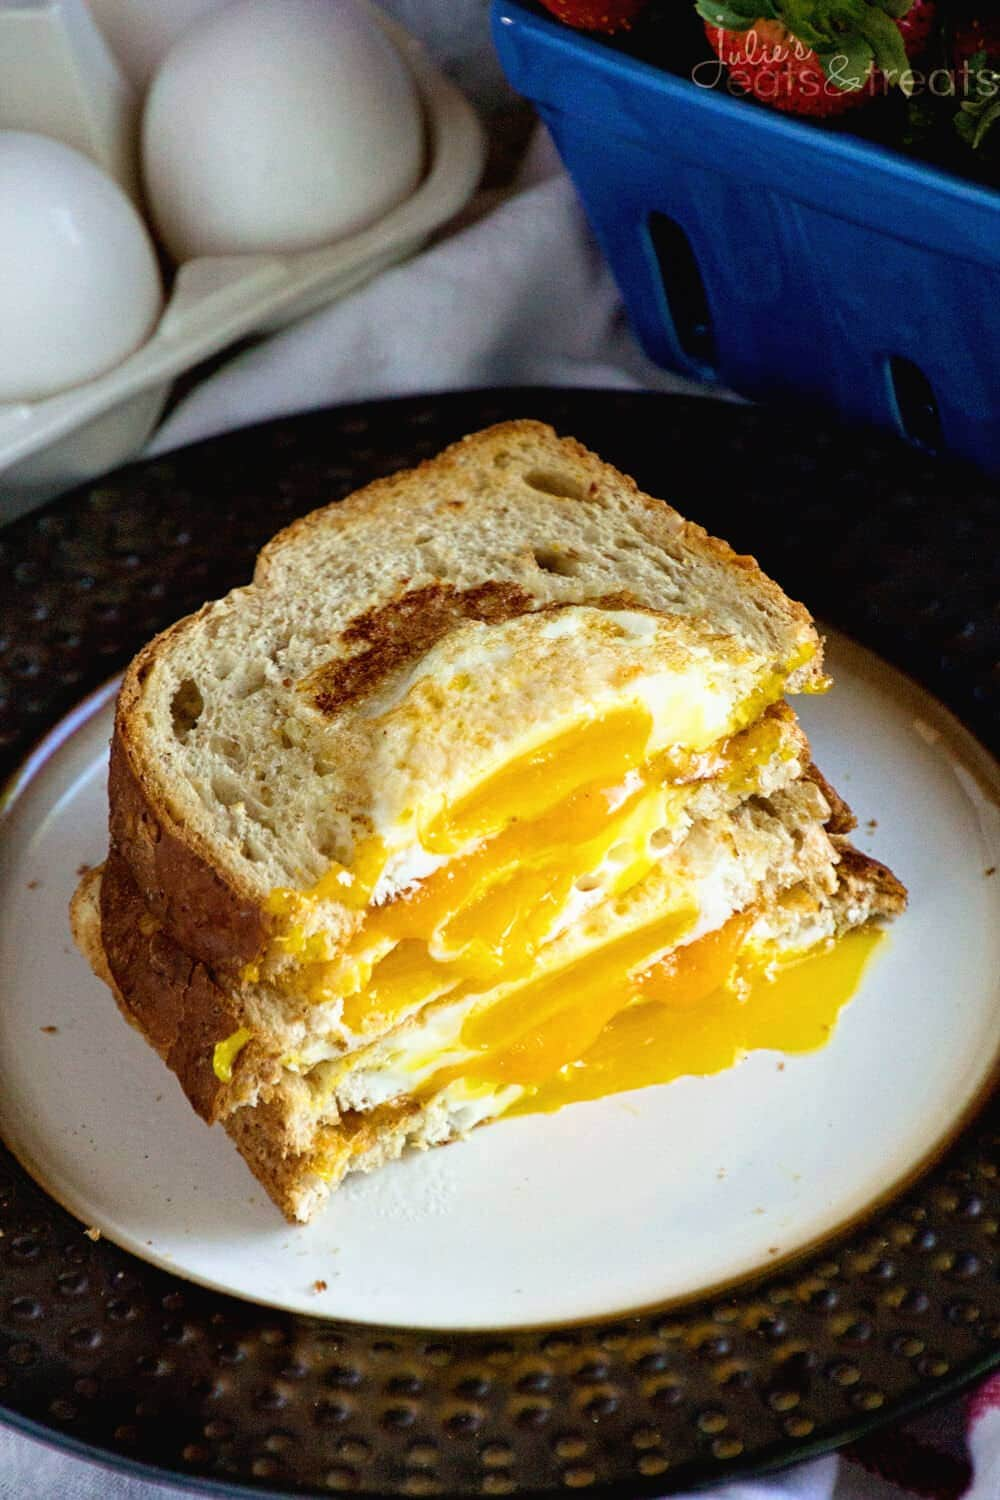 Cheesy Egg in a Hole ~ Delicious Breakfast Sandwich Recipe! Quick and Easy Eggs in a Piece of Toast with Cheese Sandwich Between them!